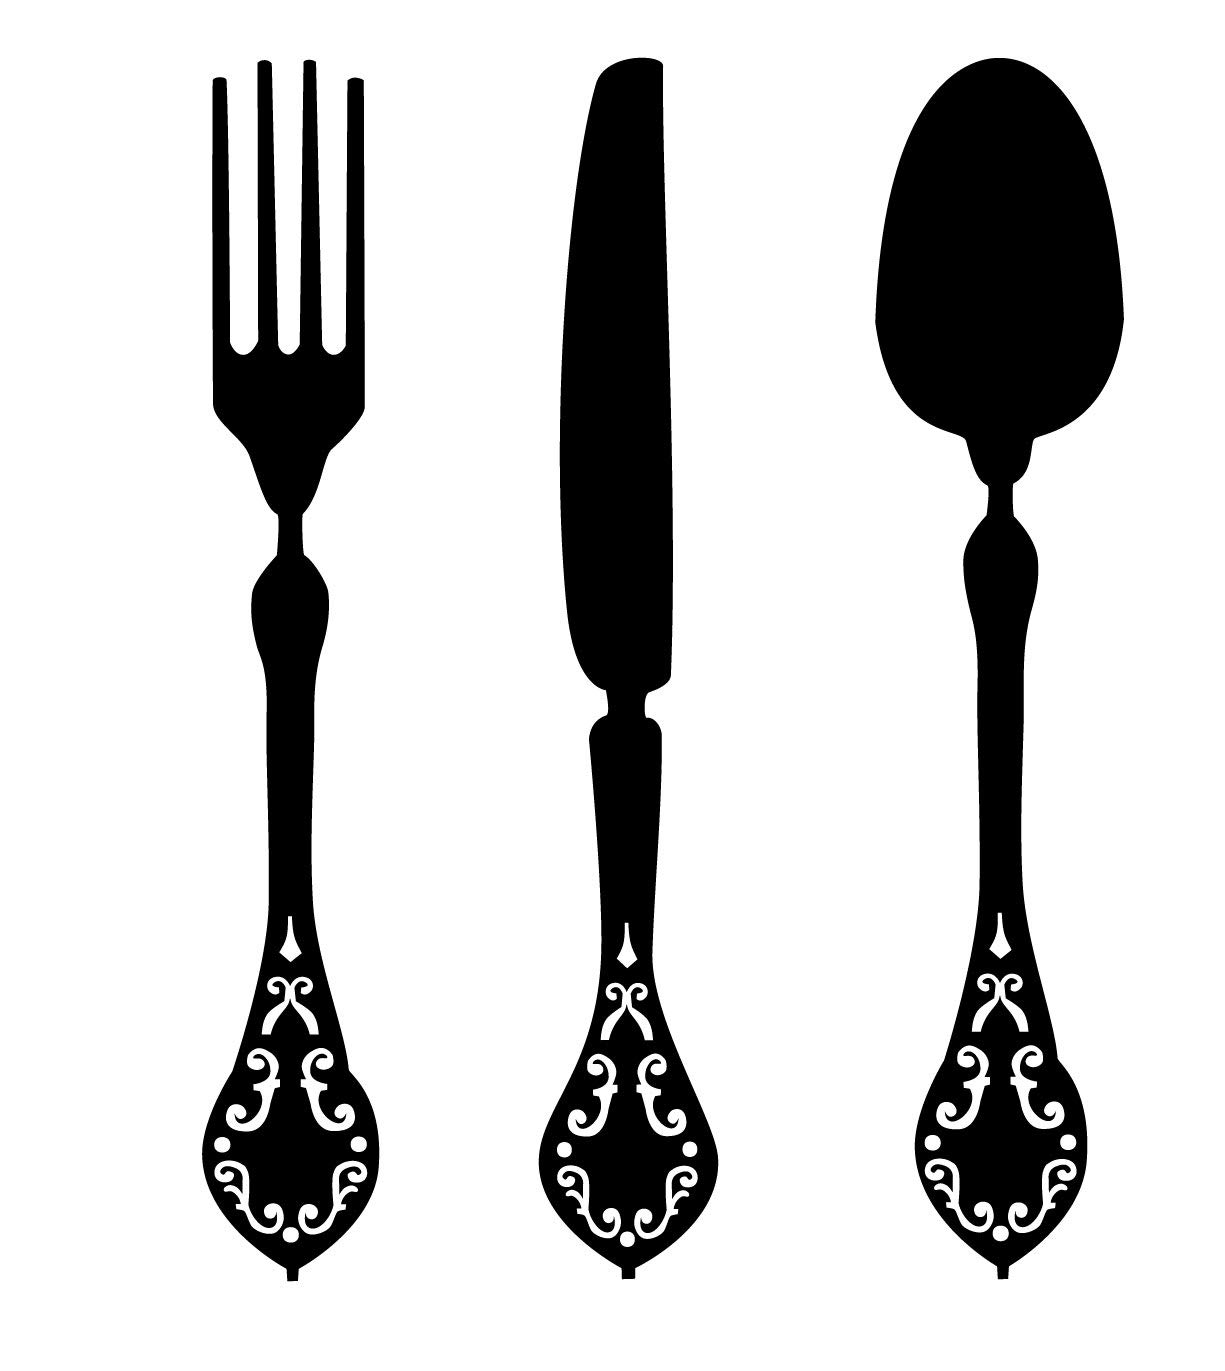 Fork knife spoon clipart black and white clipart black and white stock Fork, Knife and Spoon Elegant Vinyl Designs - Kitchen or Dining Room Wall  Decals for Home or Restaurant Decor, 36-inch Tall, Black clipart black and white stock